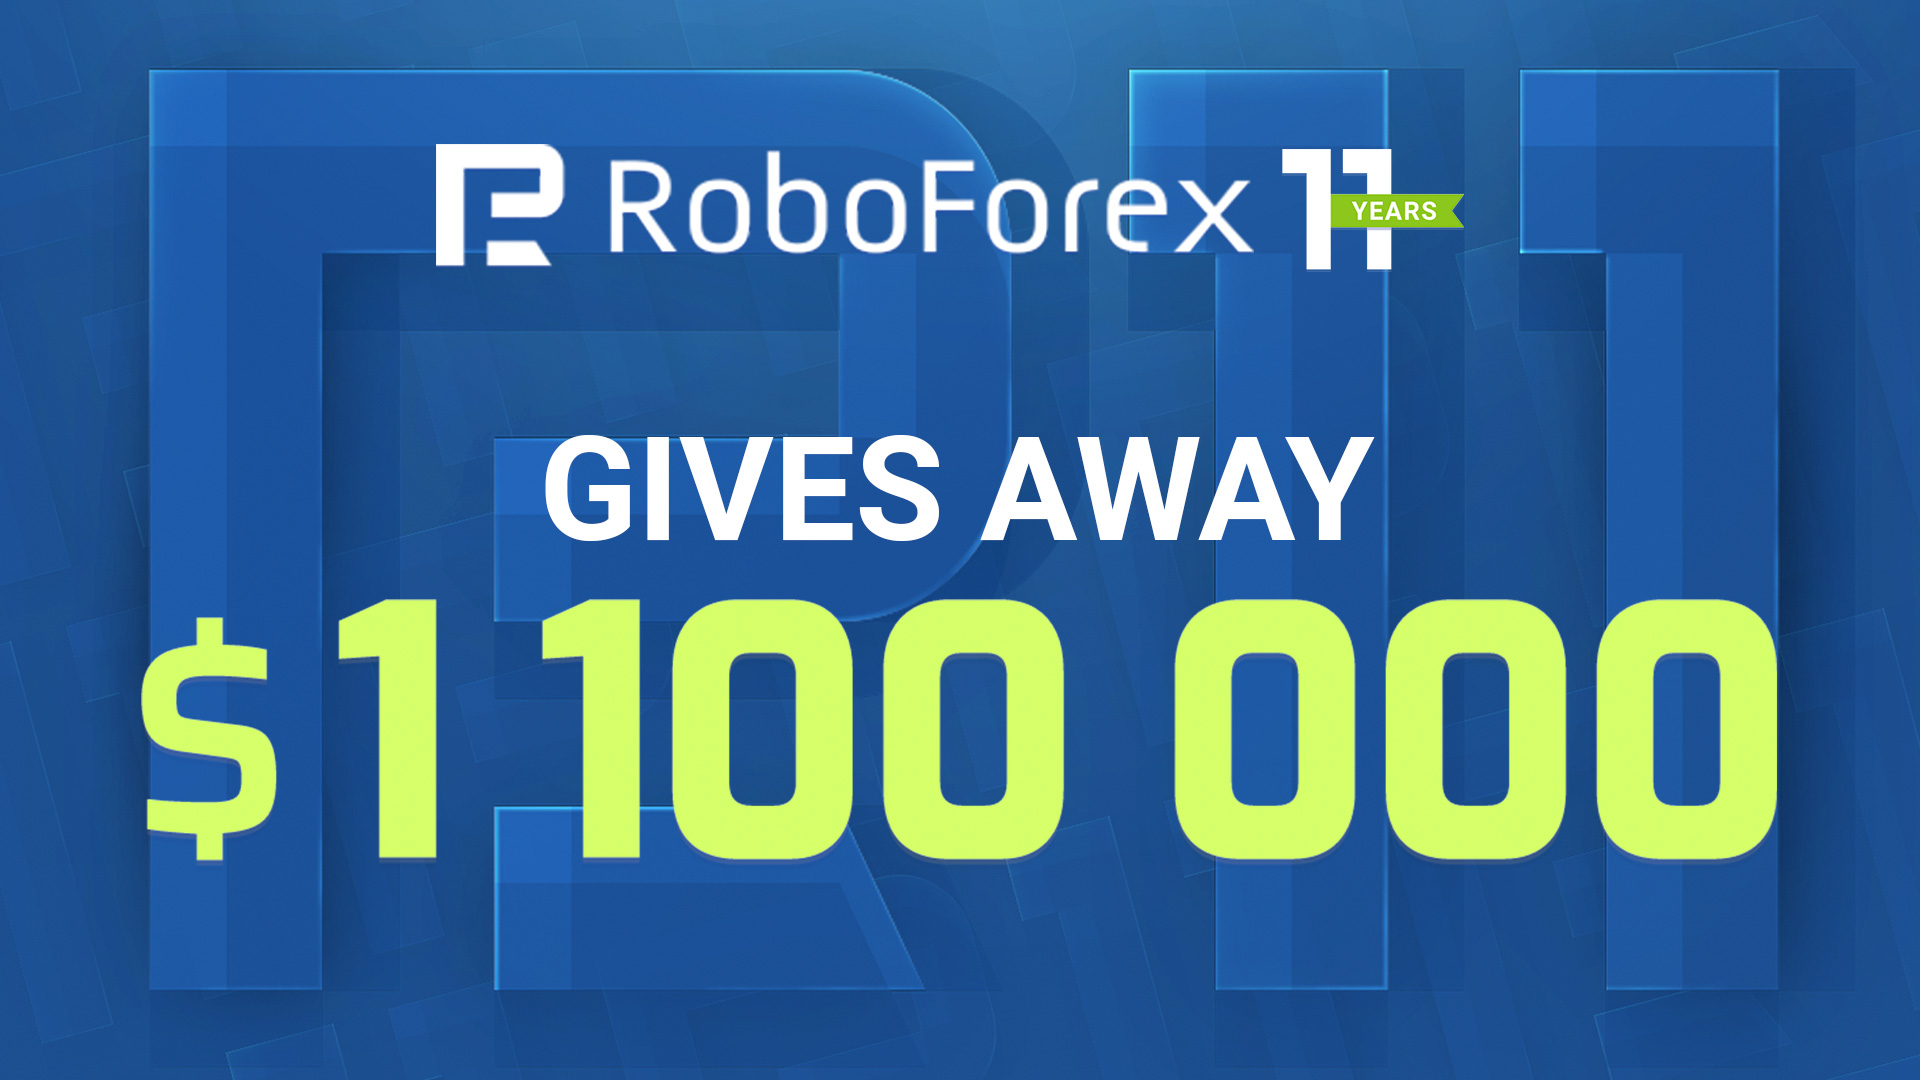 RoboForex Launching New Promo, Raffling $1,100,000 This Time preview